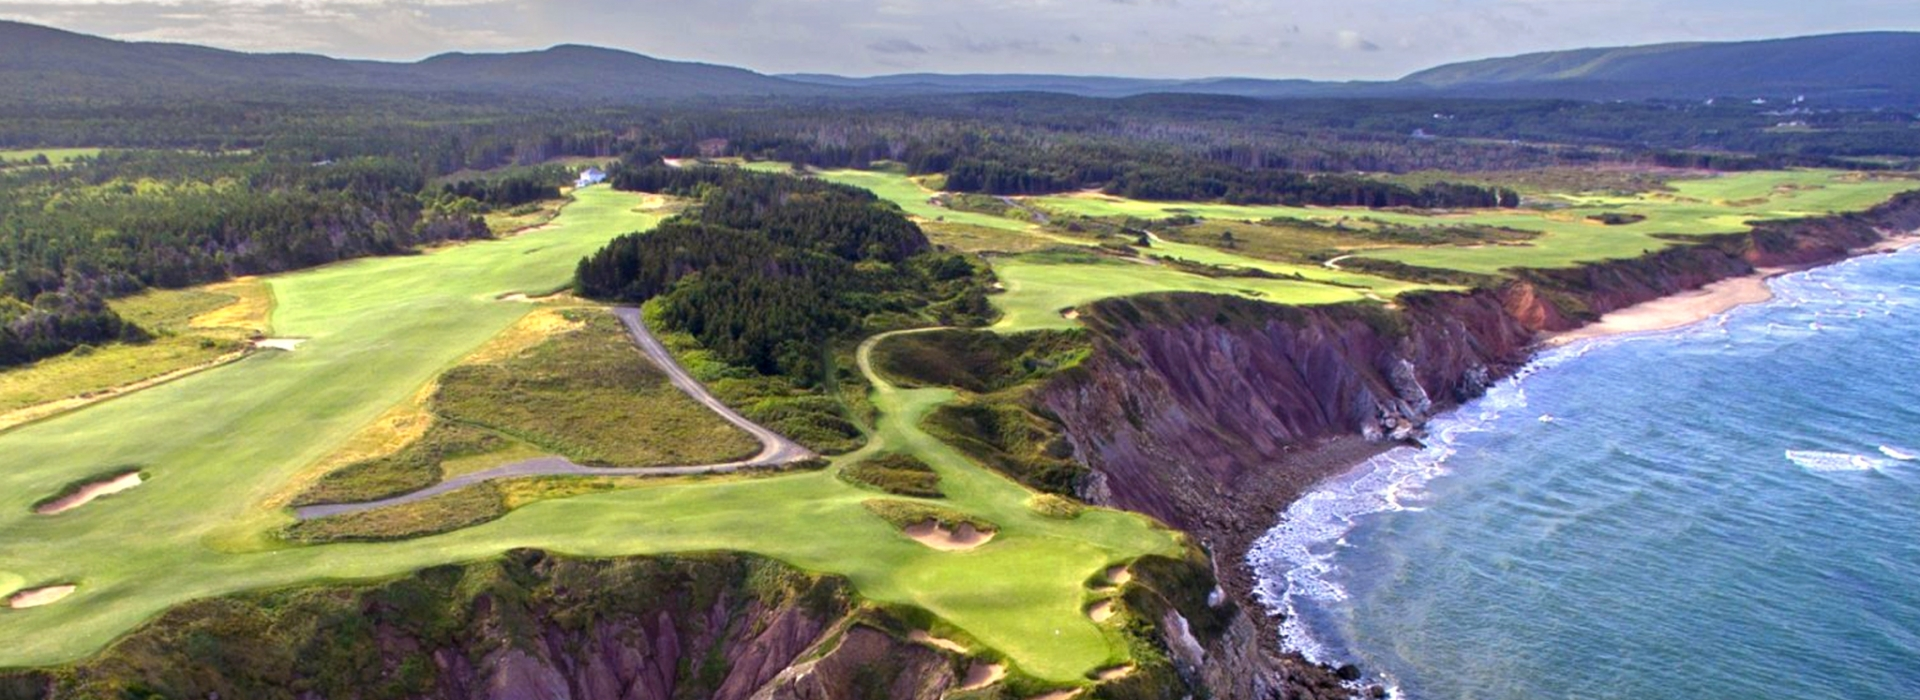 Cabot Cliffs ranked first in list of top golf courses in country